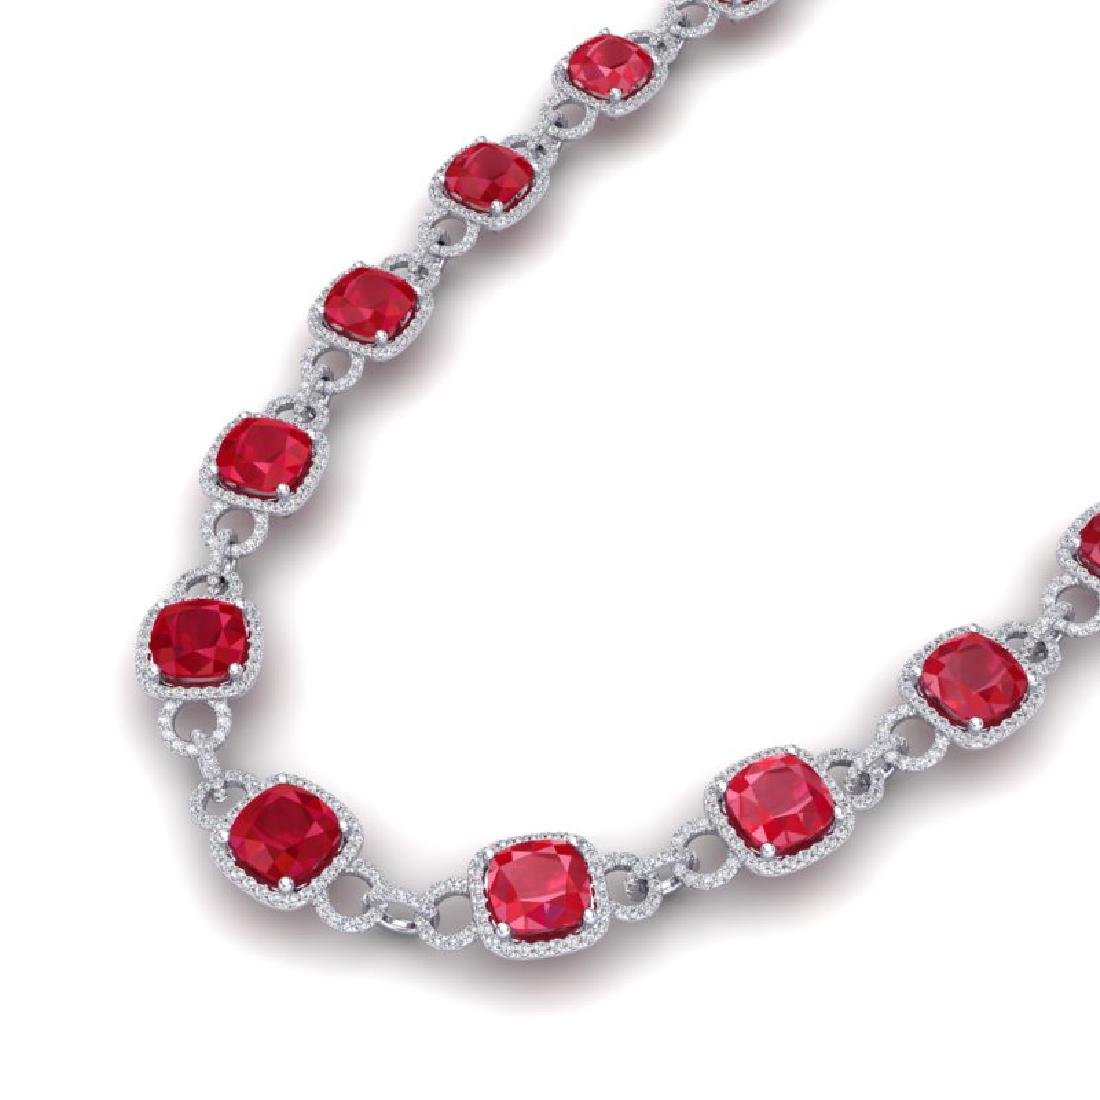 56 CTW Ruby & VS/SI Diamond Certified Necklace 14K